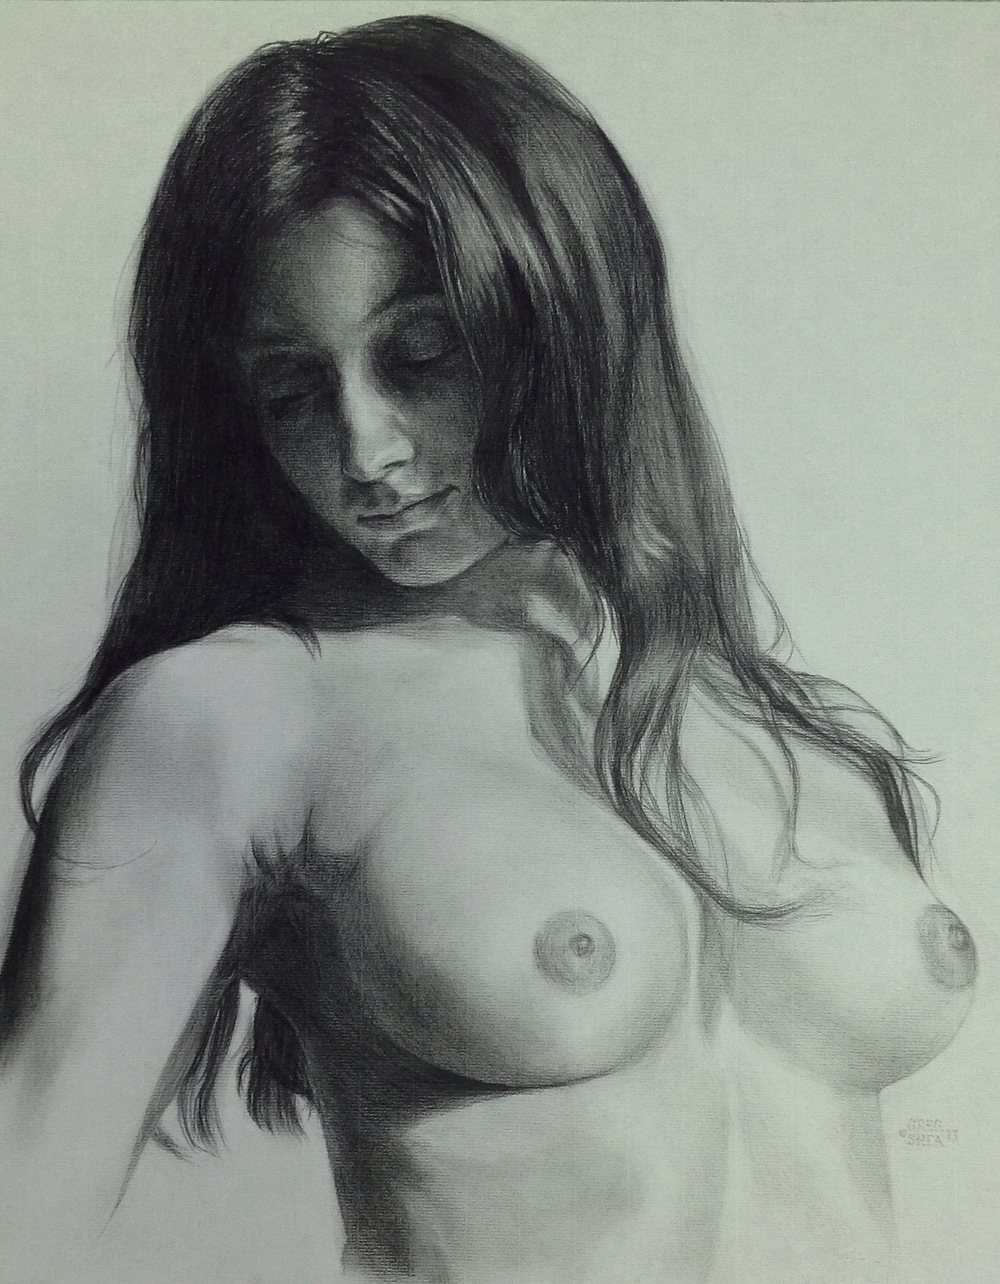 "Sangii  , 2013. Conté pencil on grey laid paper, 18 x 24"". Private collection."